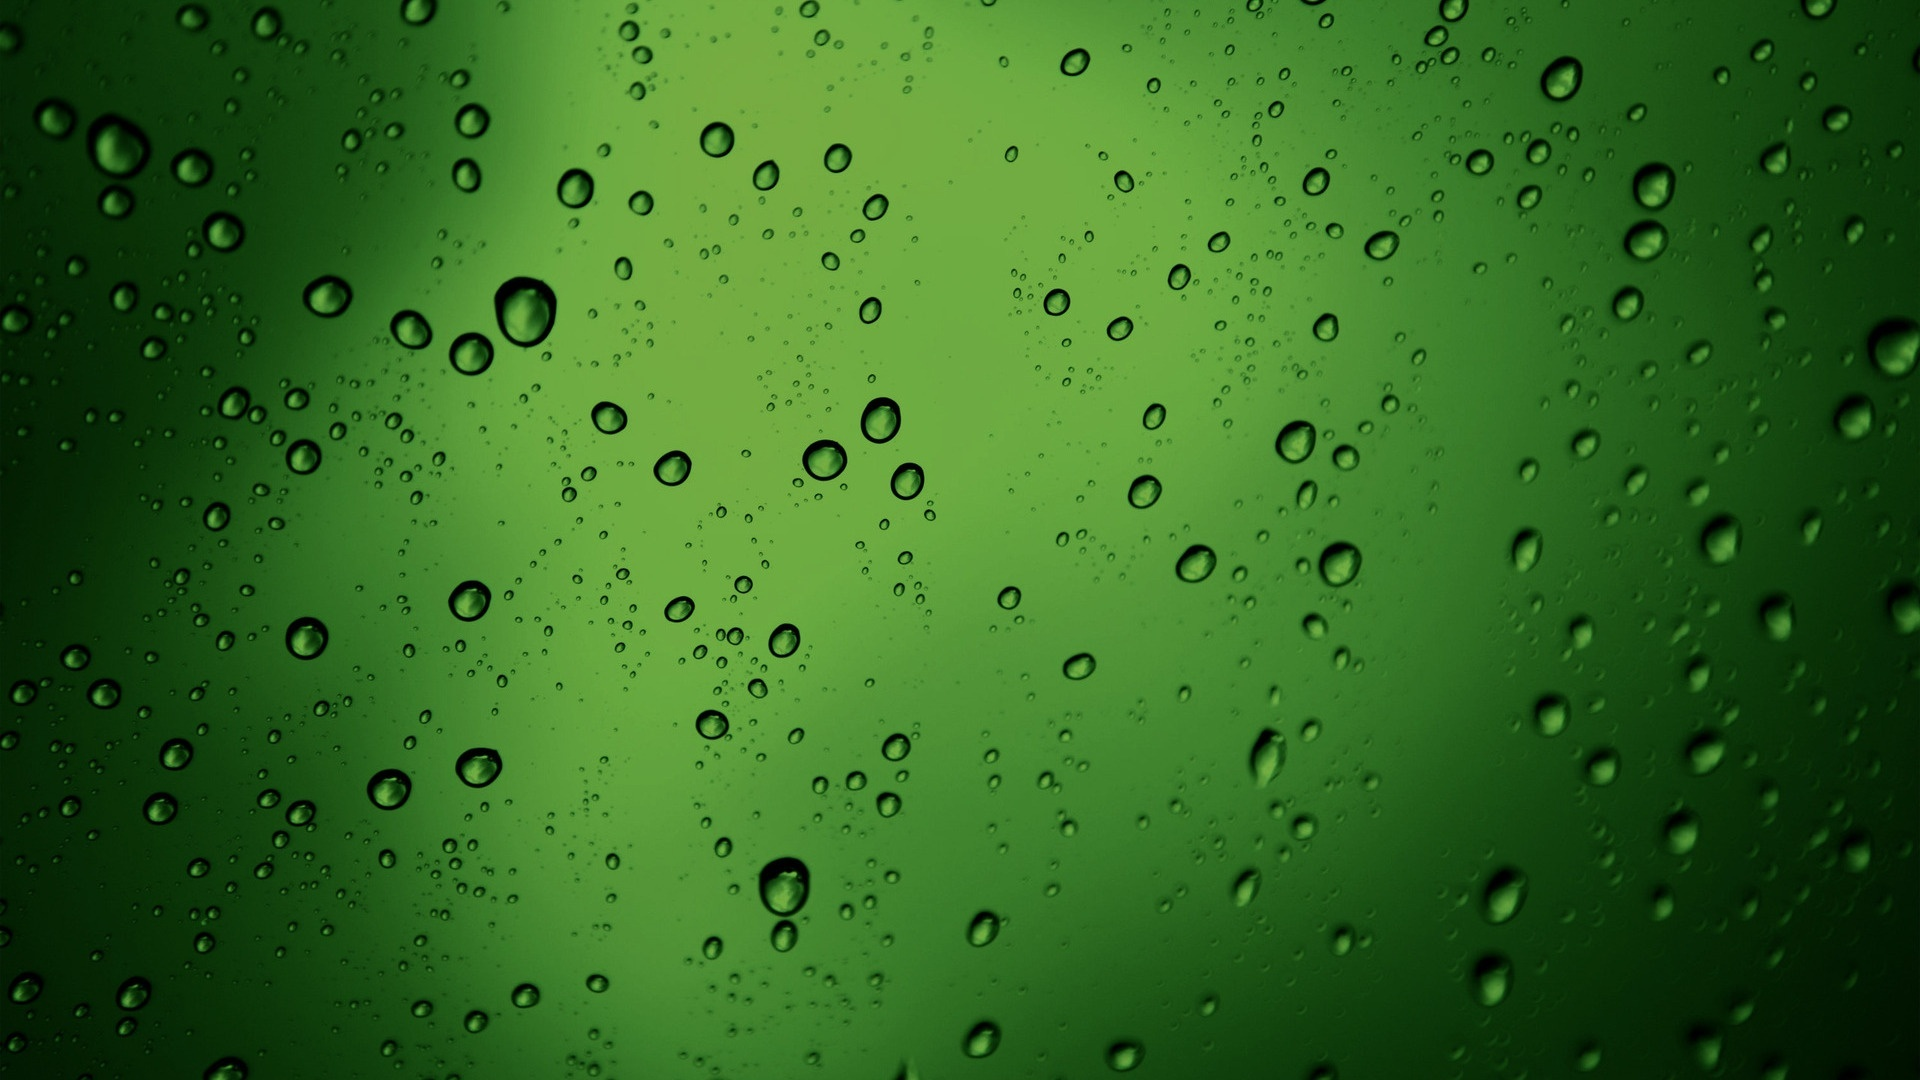 green raindrops background